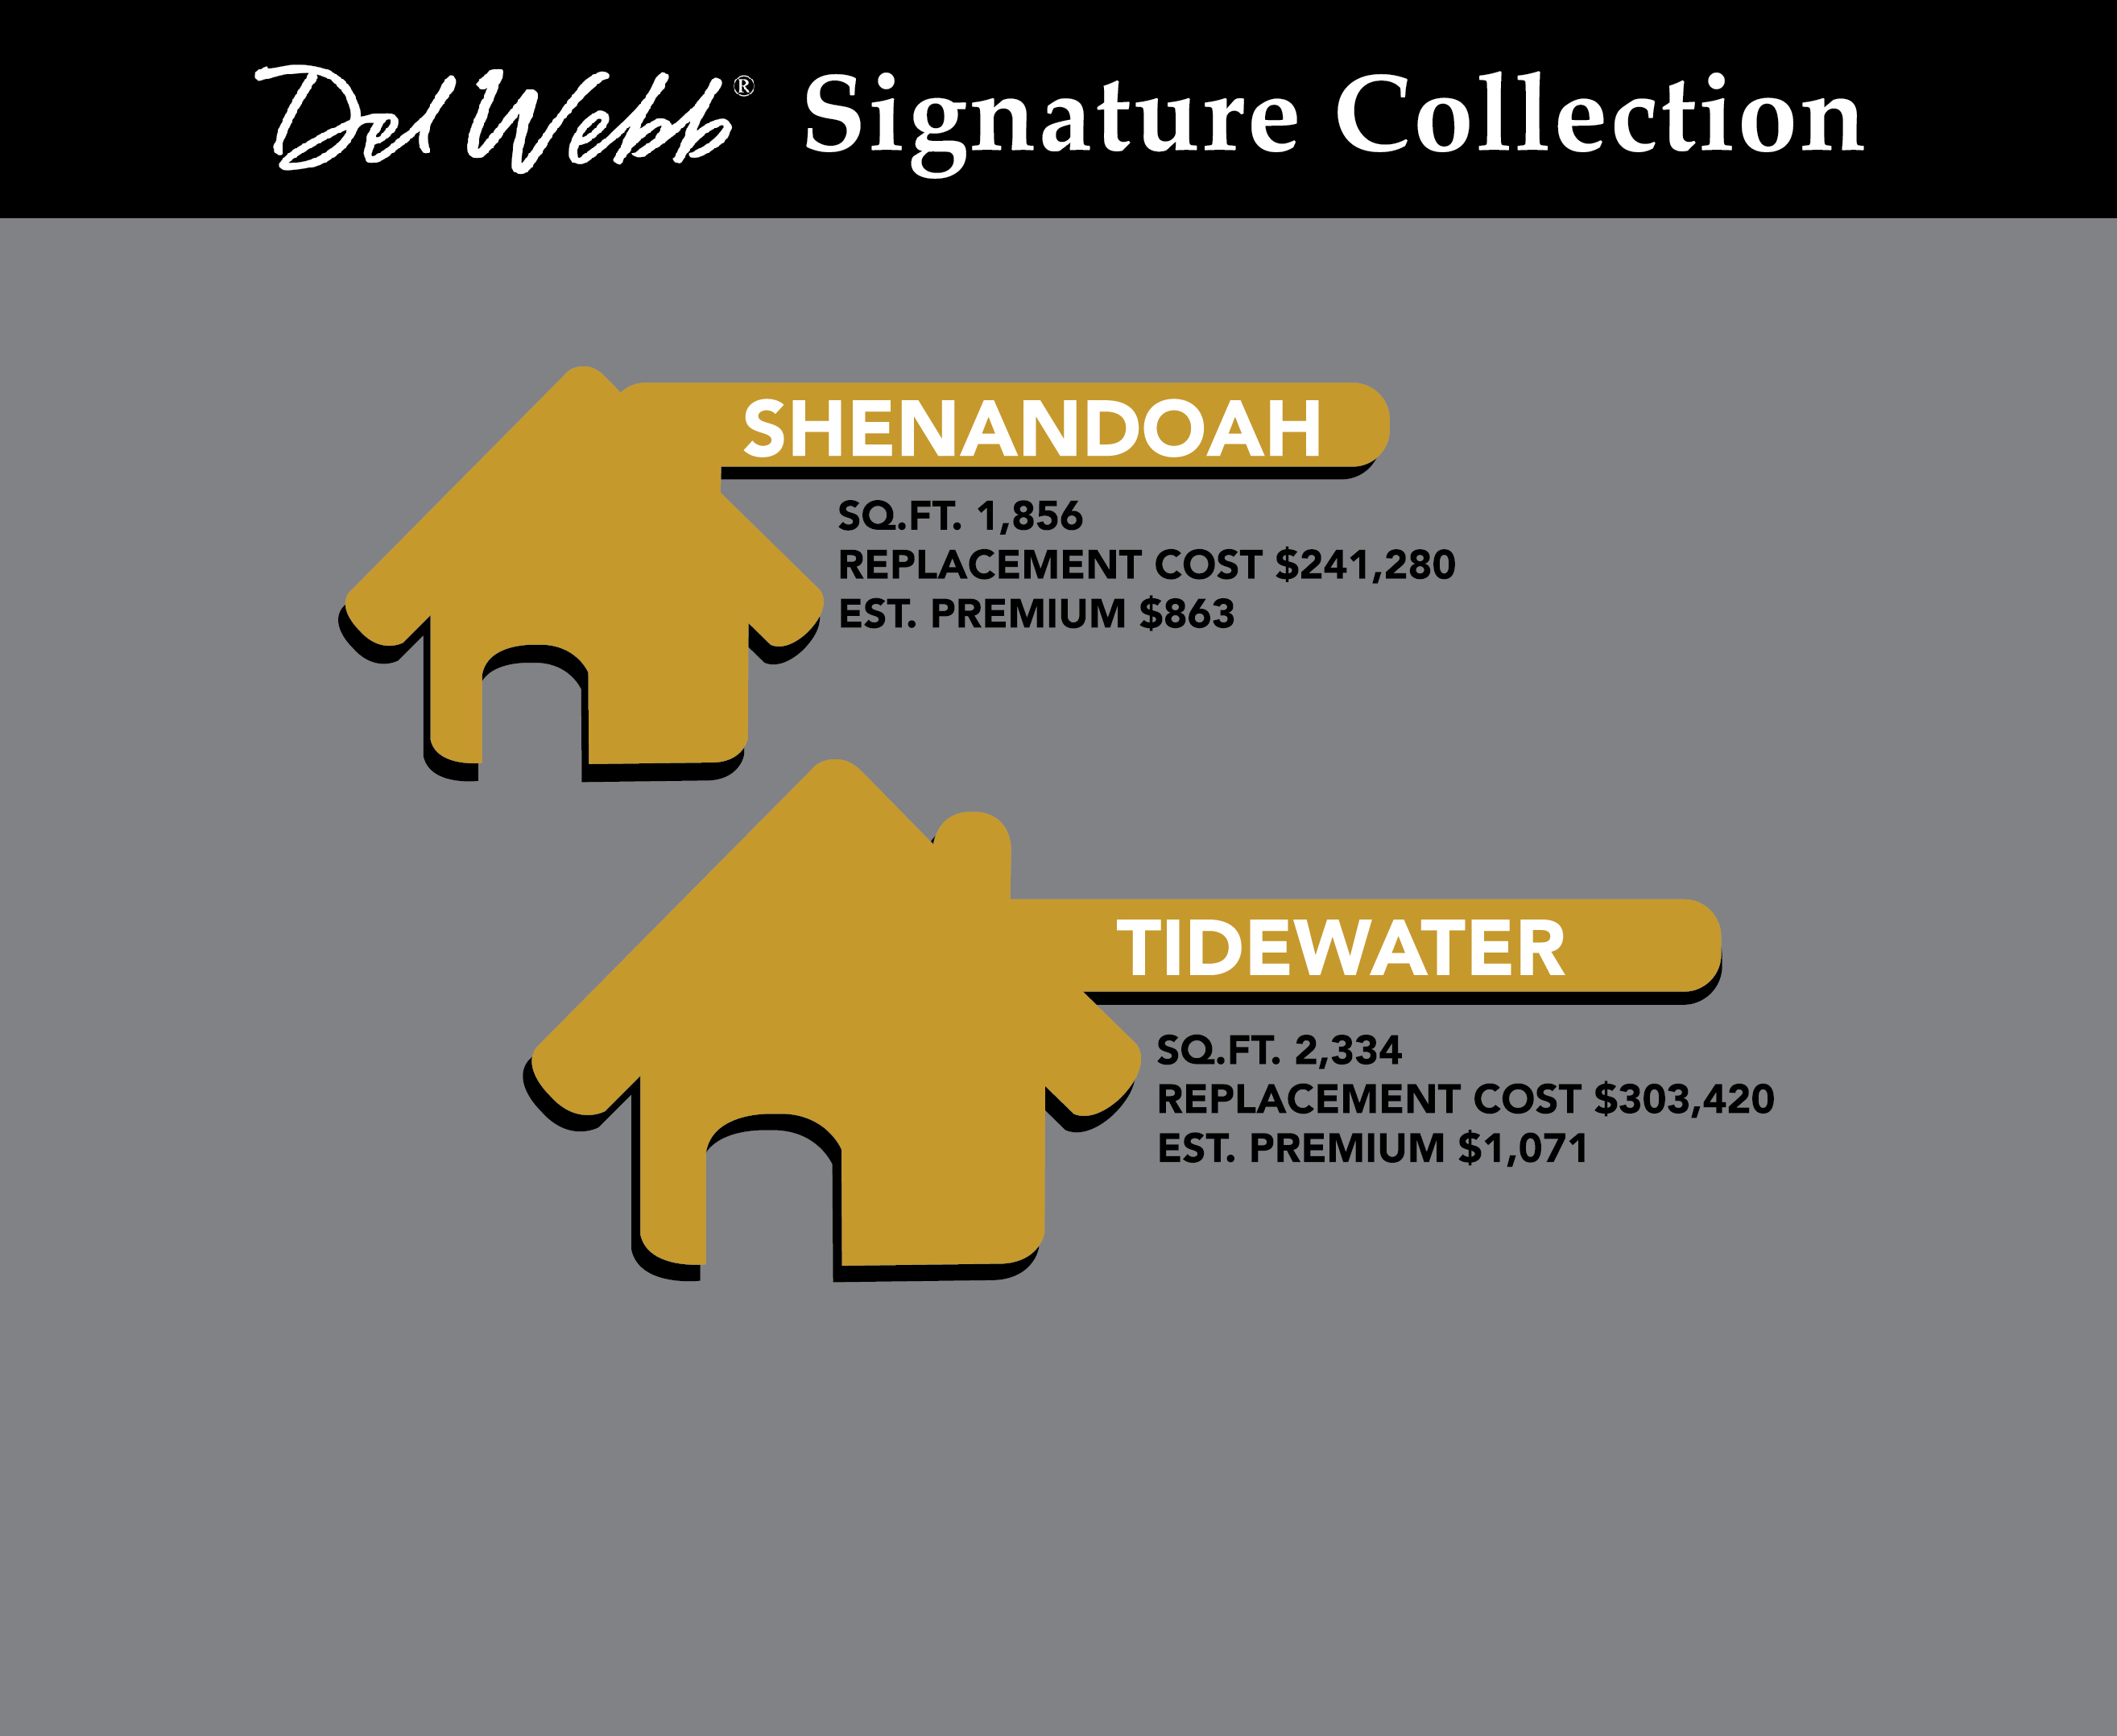 Ave Maria-Del Webb_Signature Collection_LP